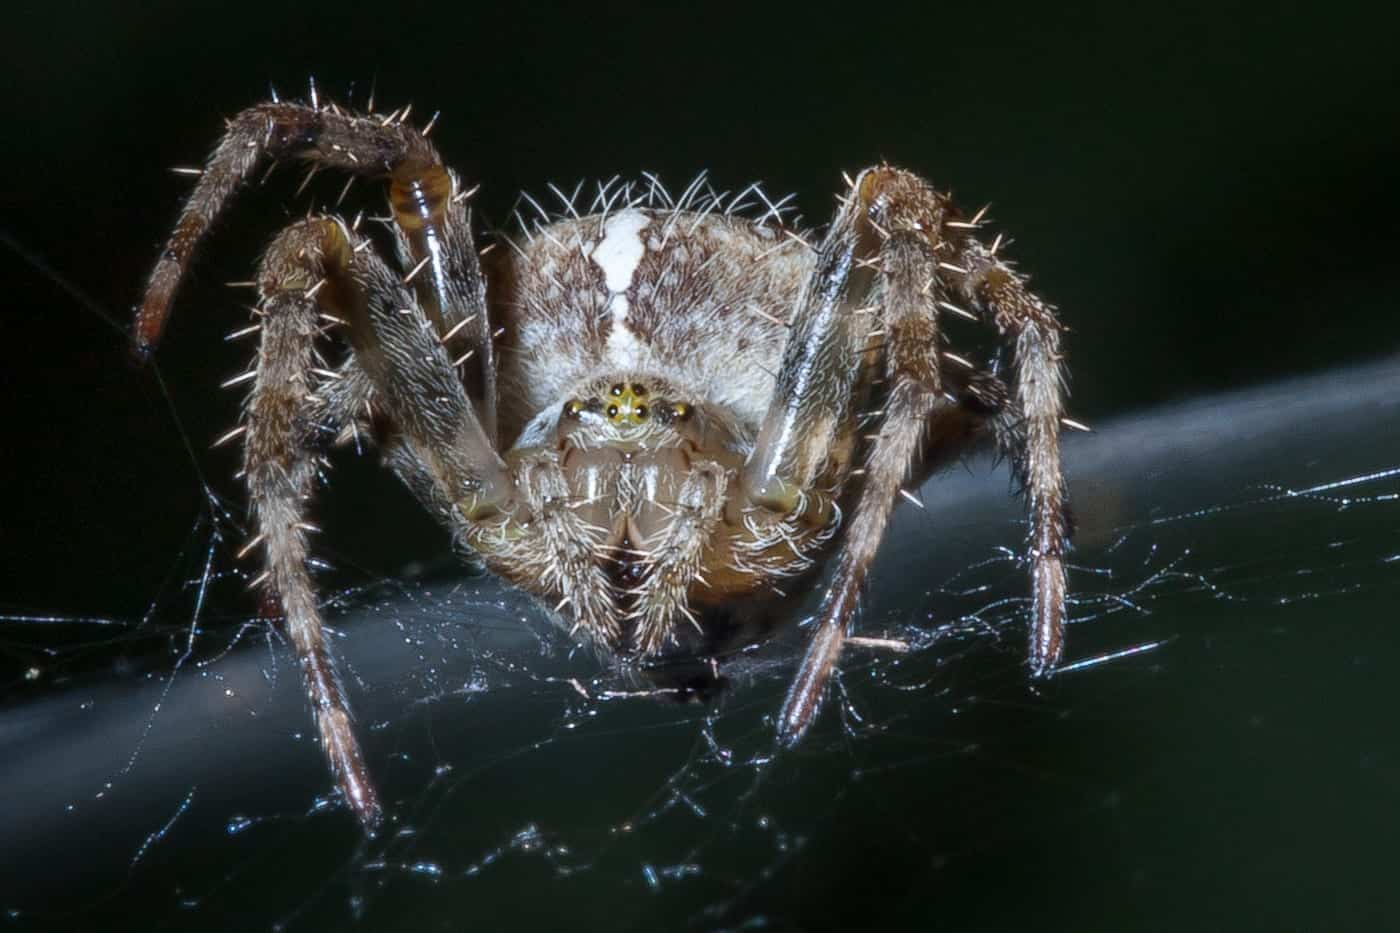 Scary Spiders Pictures 2